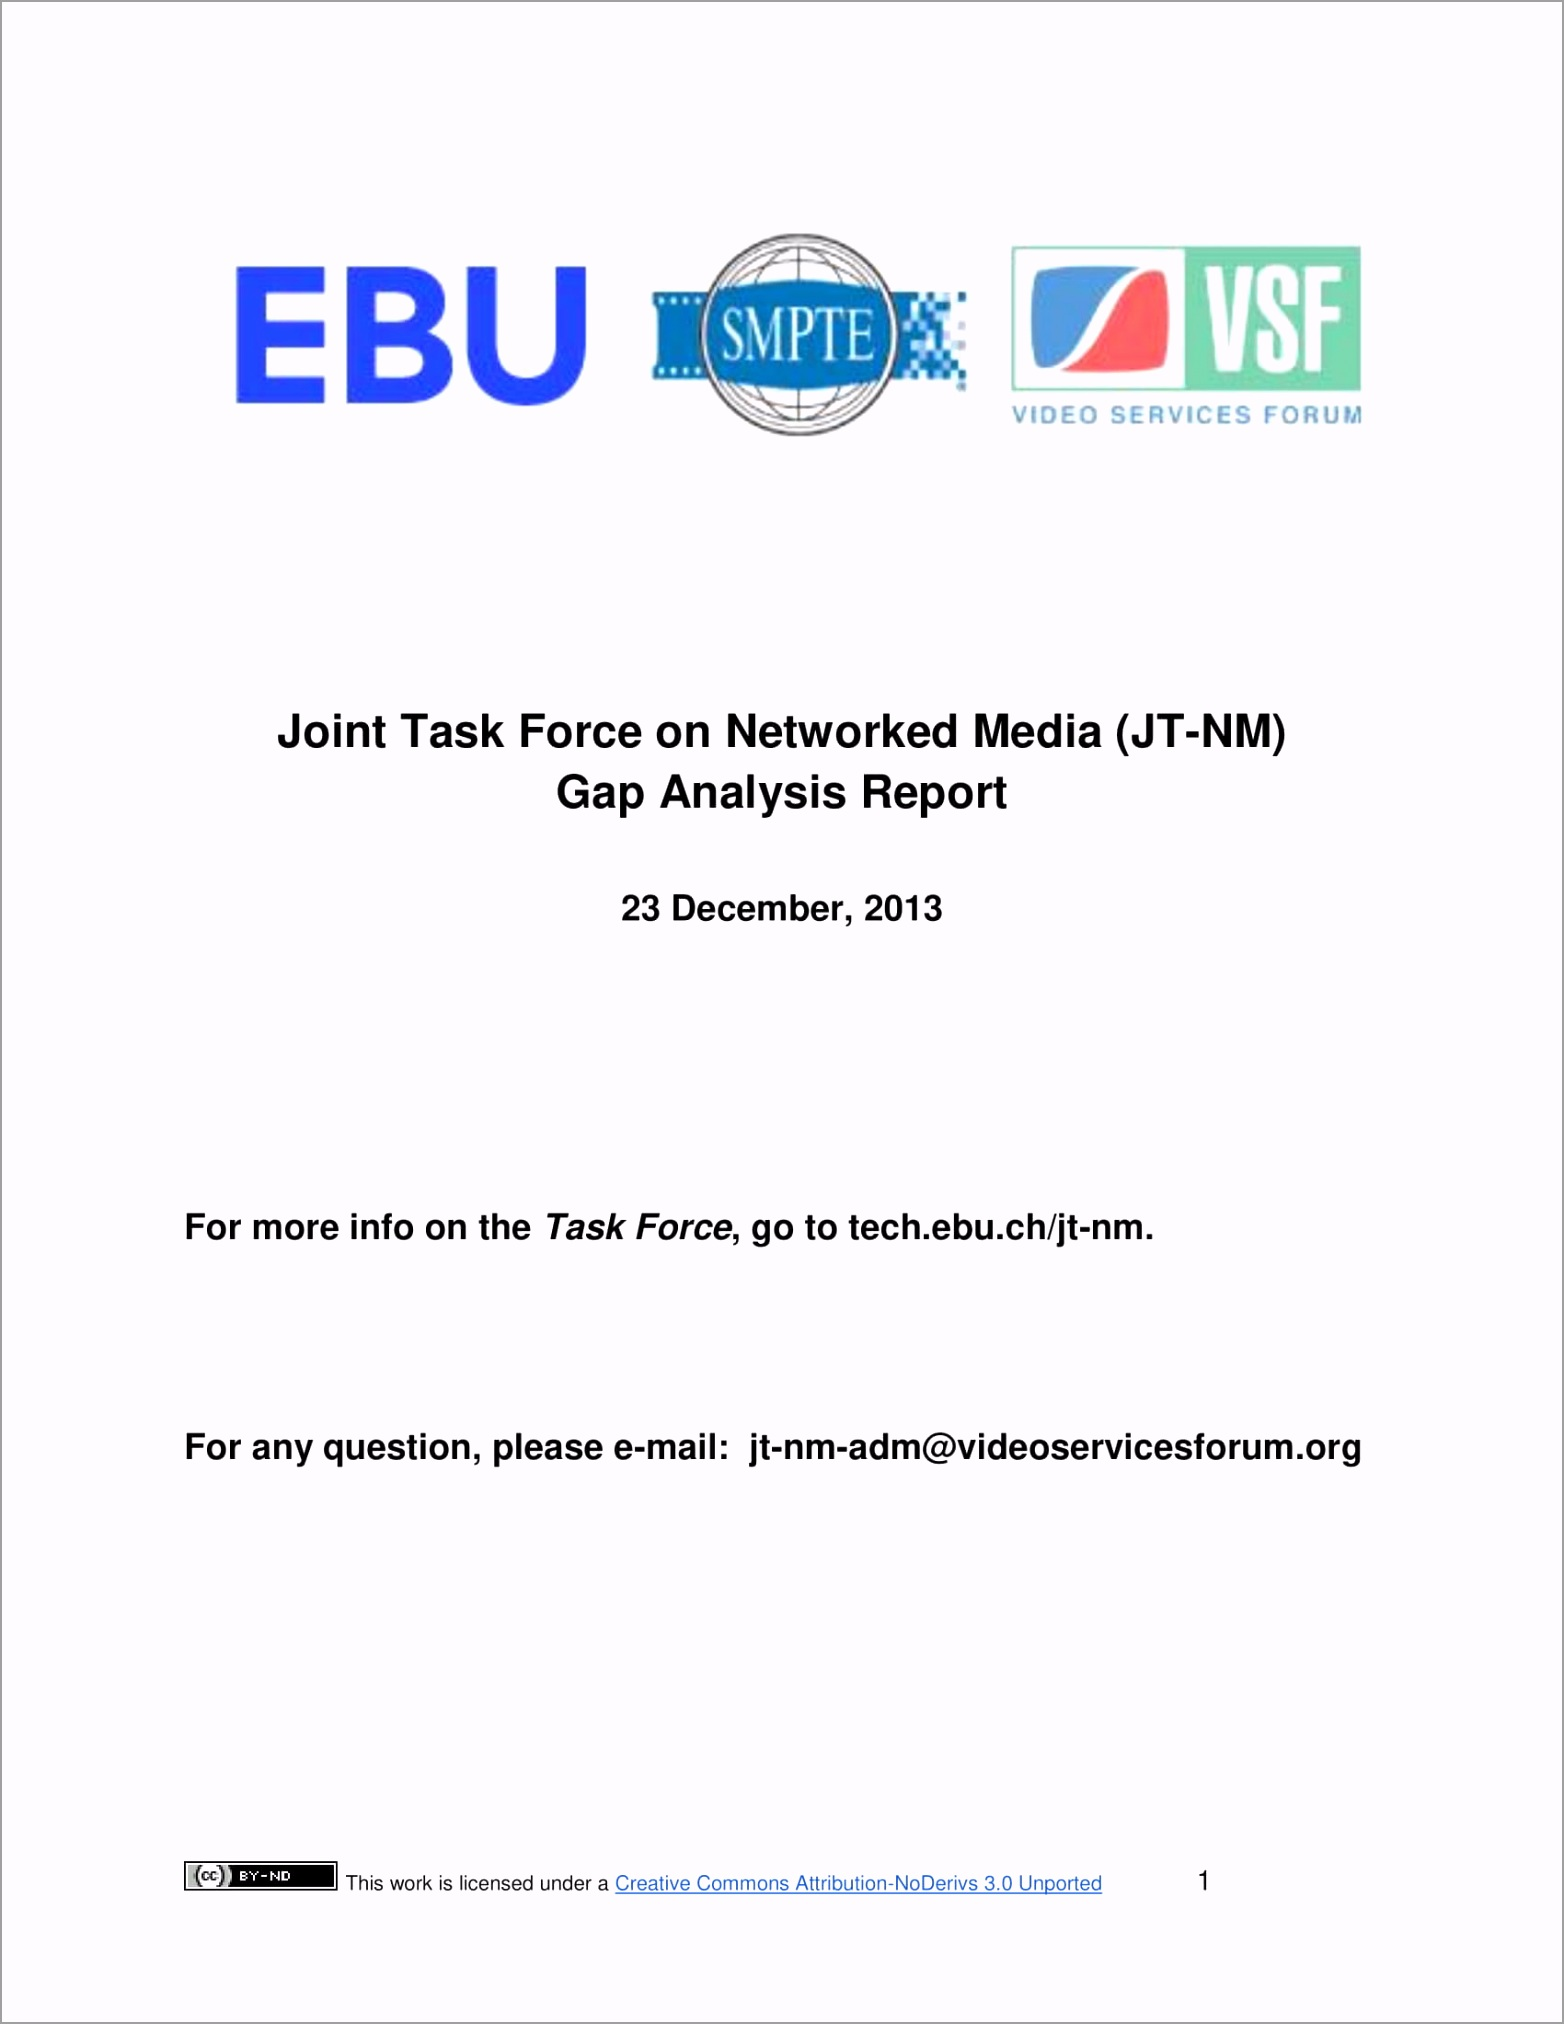 Joint Tasked Force and Network Media Gap Analysis Report Example 001 ueiwu